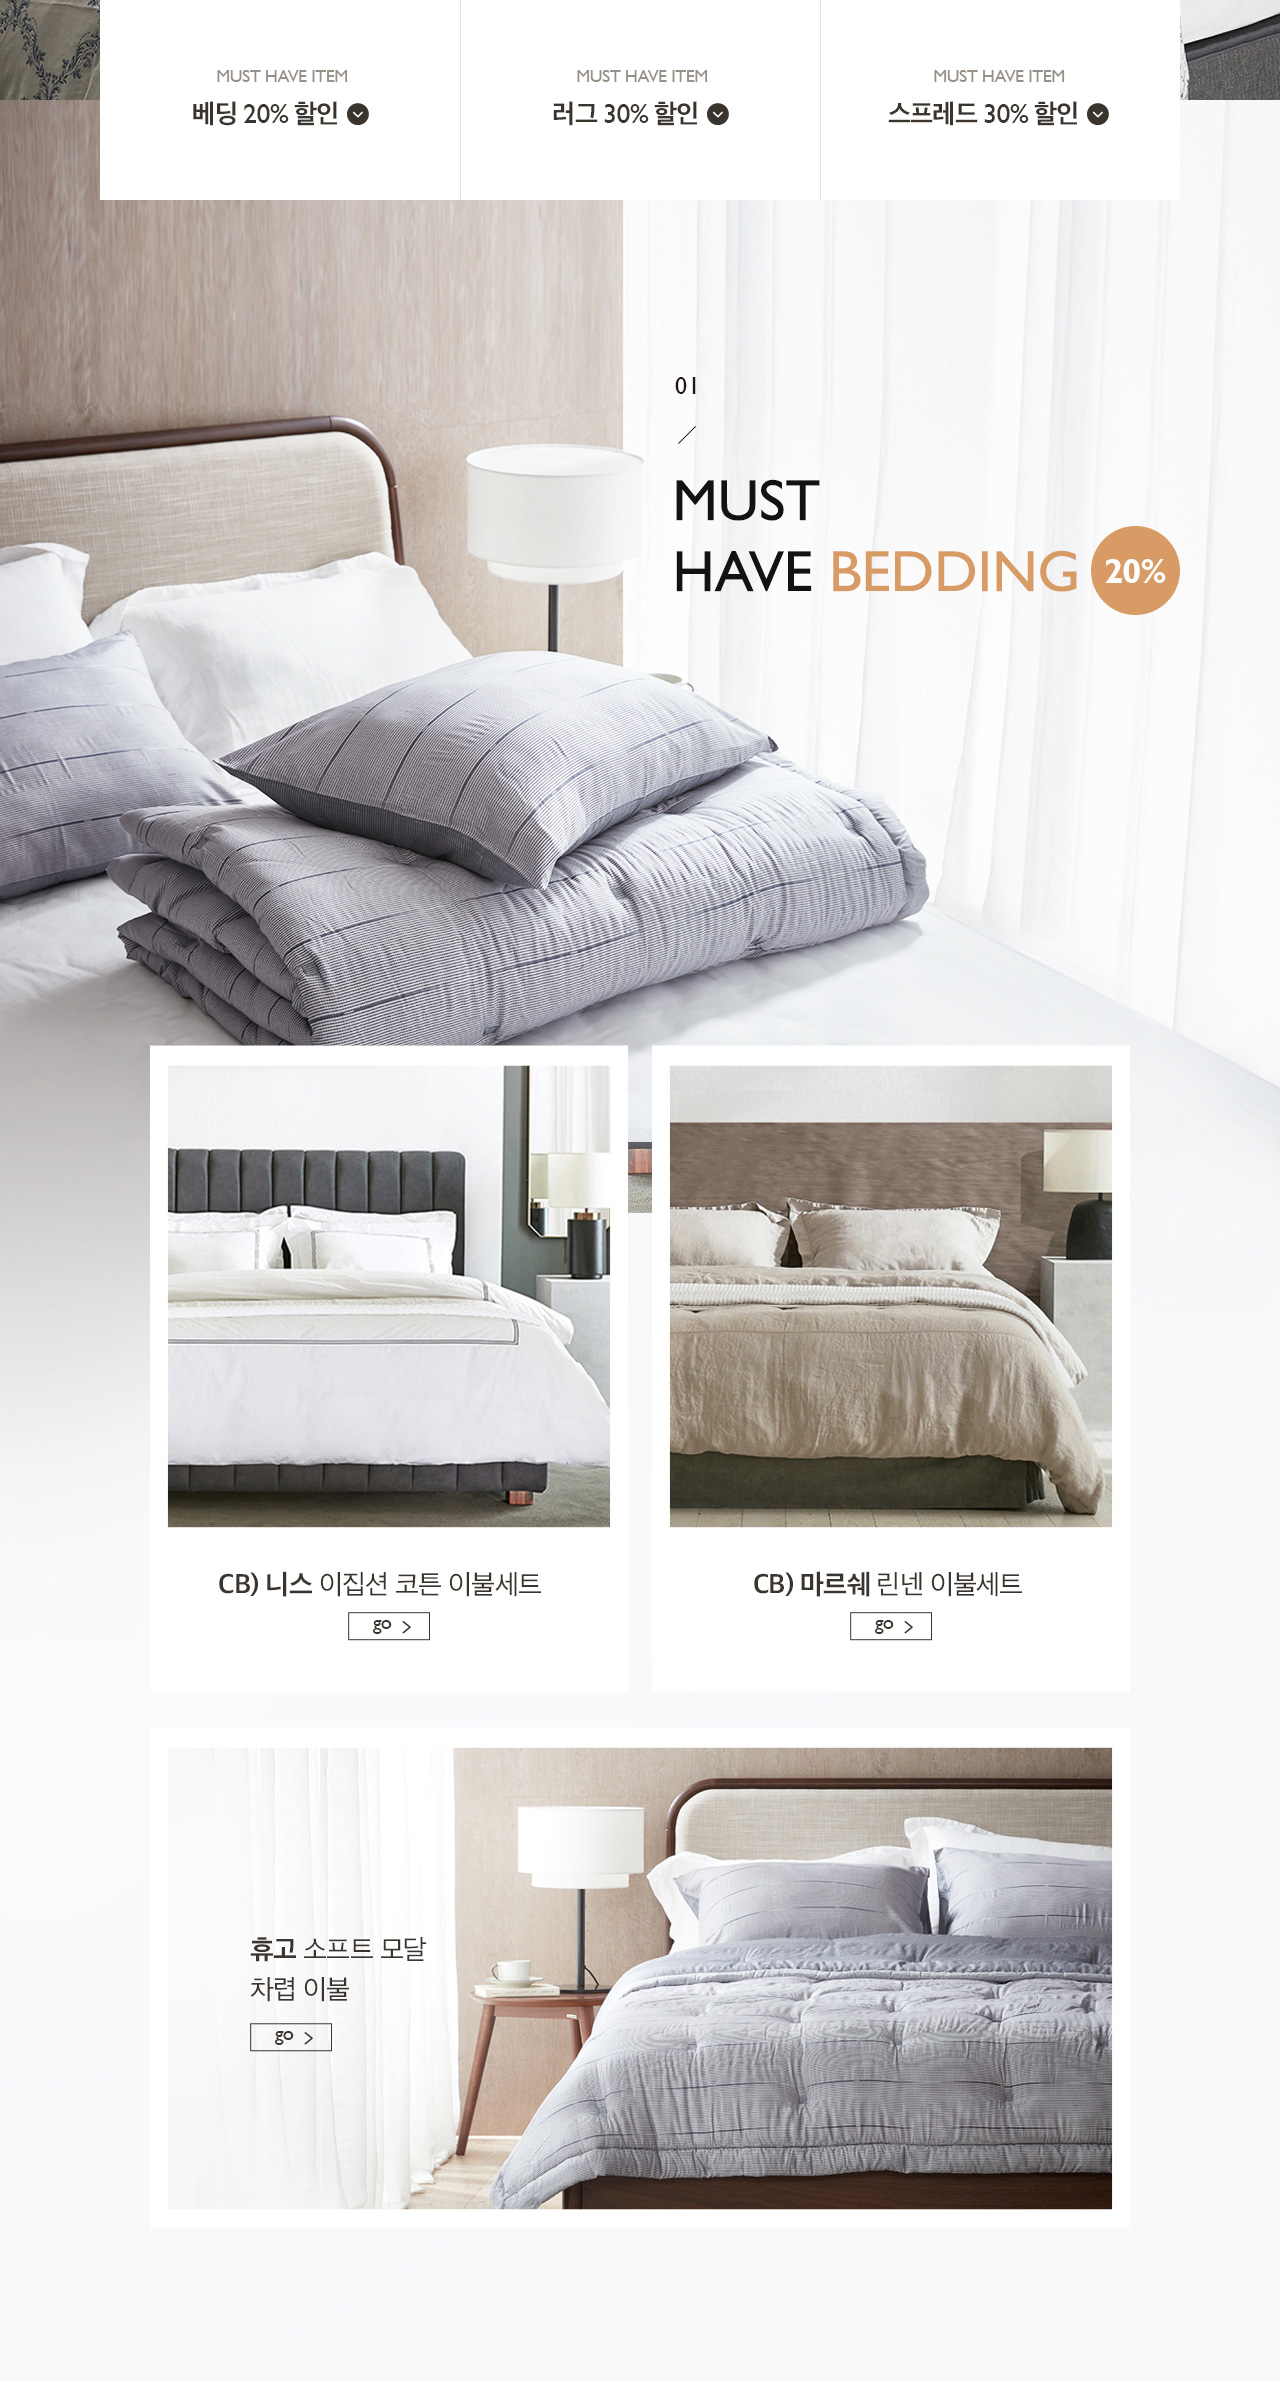 MUST HAVE BEDDING 20%